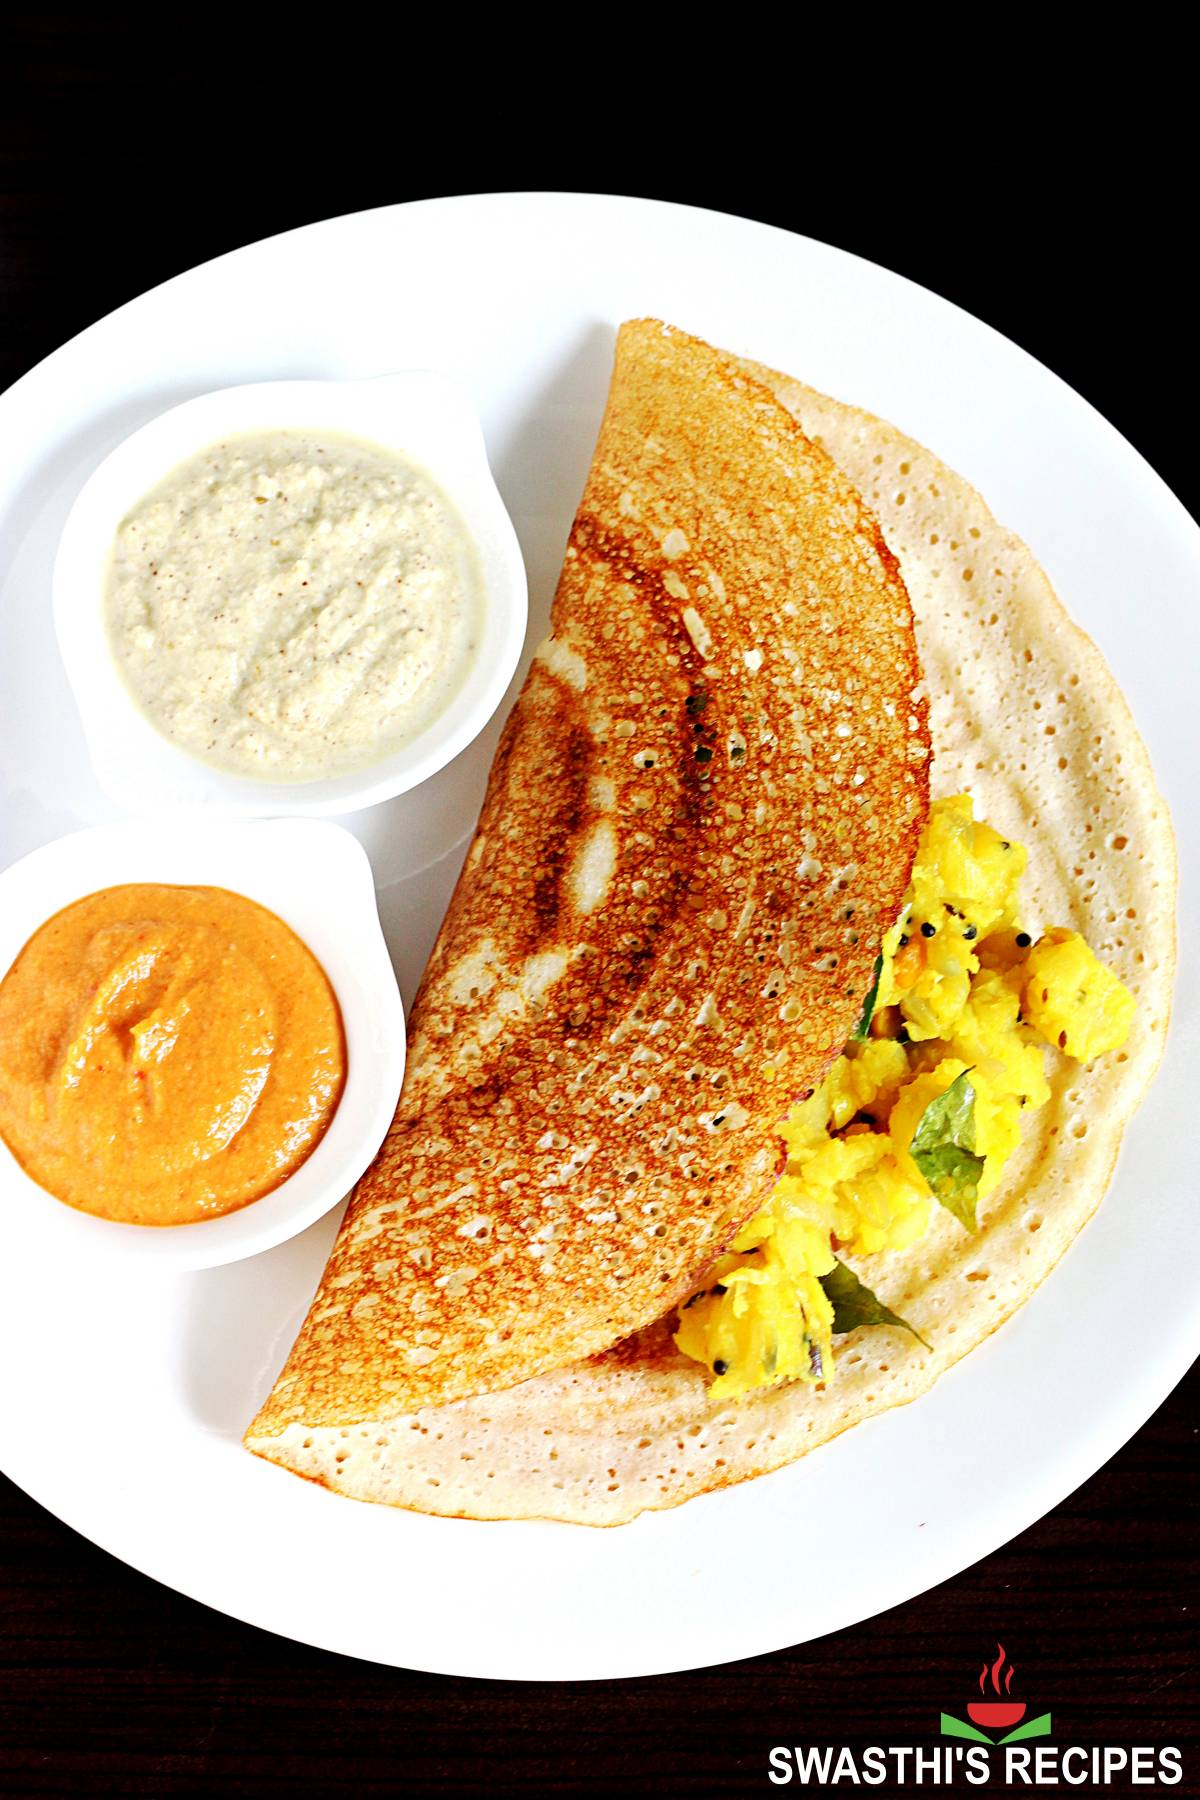 Dosa recipe with homemade batter